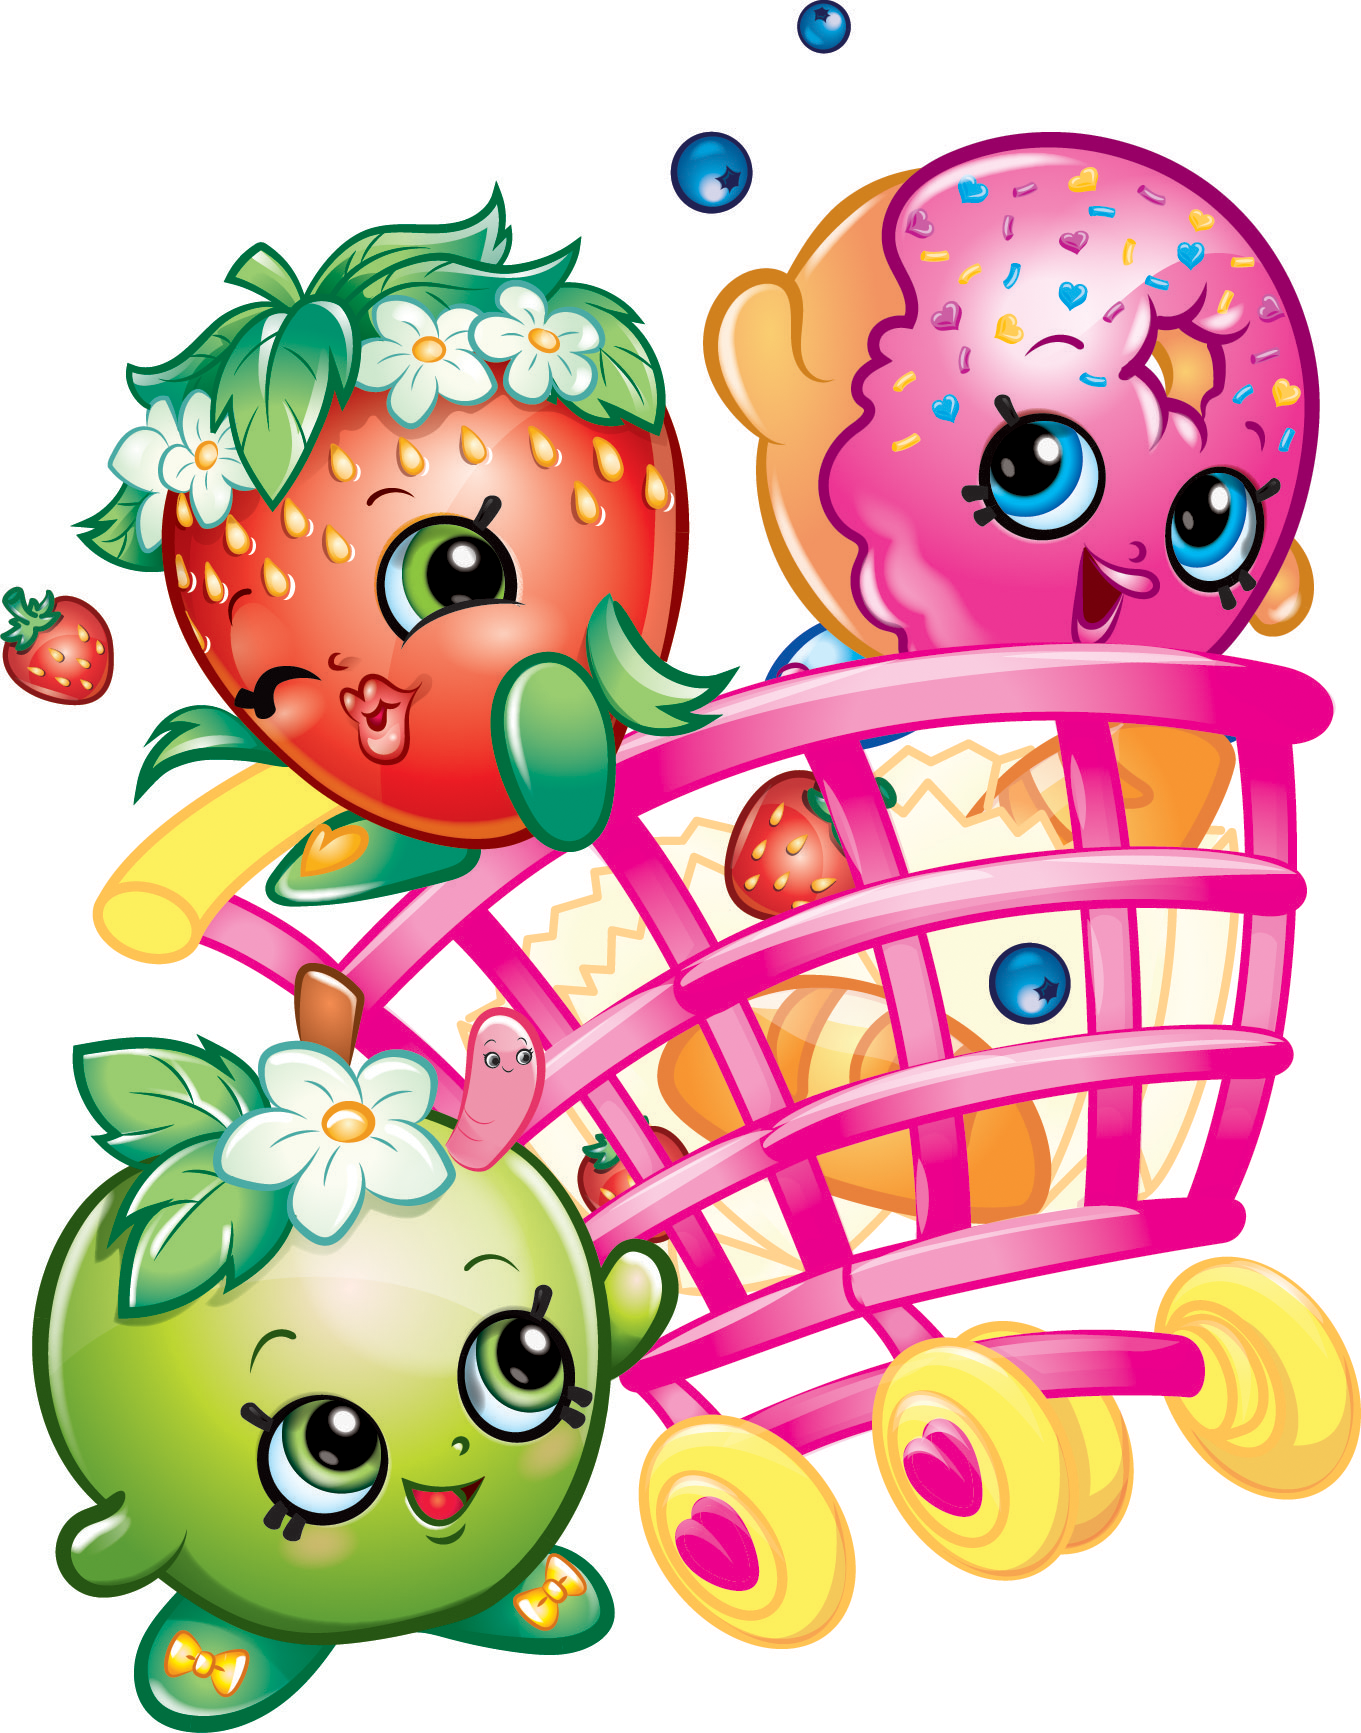 Shopkins Hero Group 1png 13611733 Shopkins Pinterest